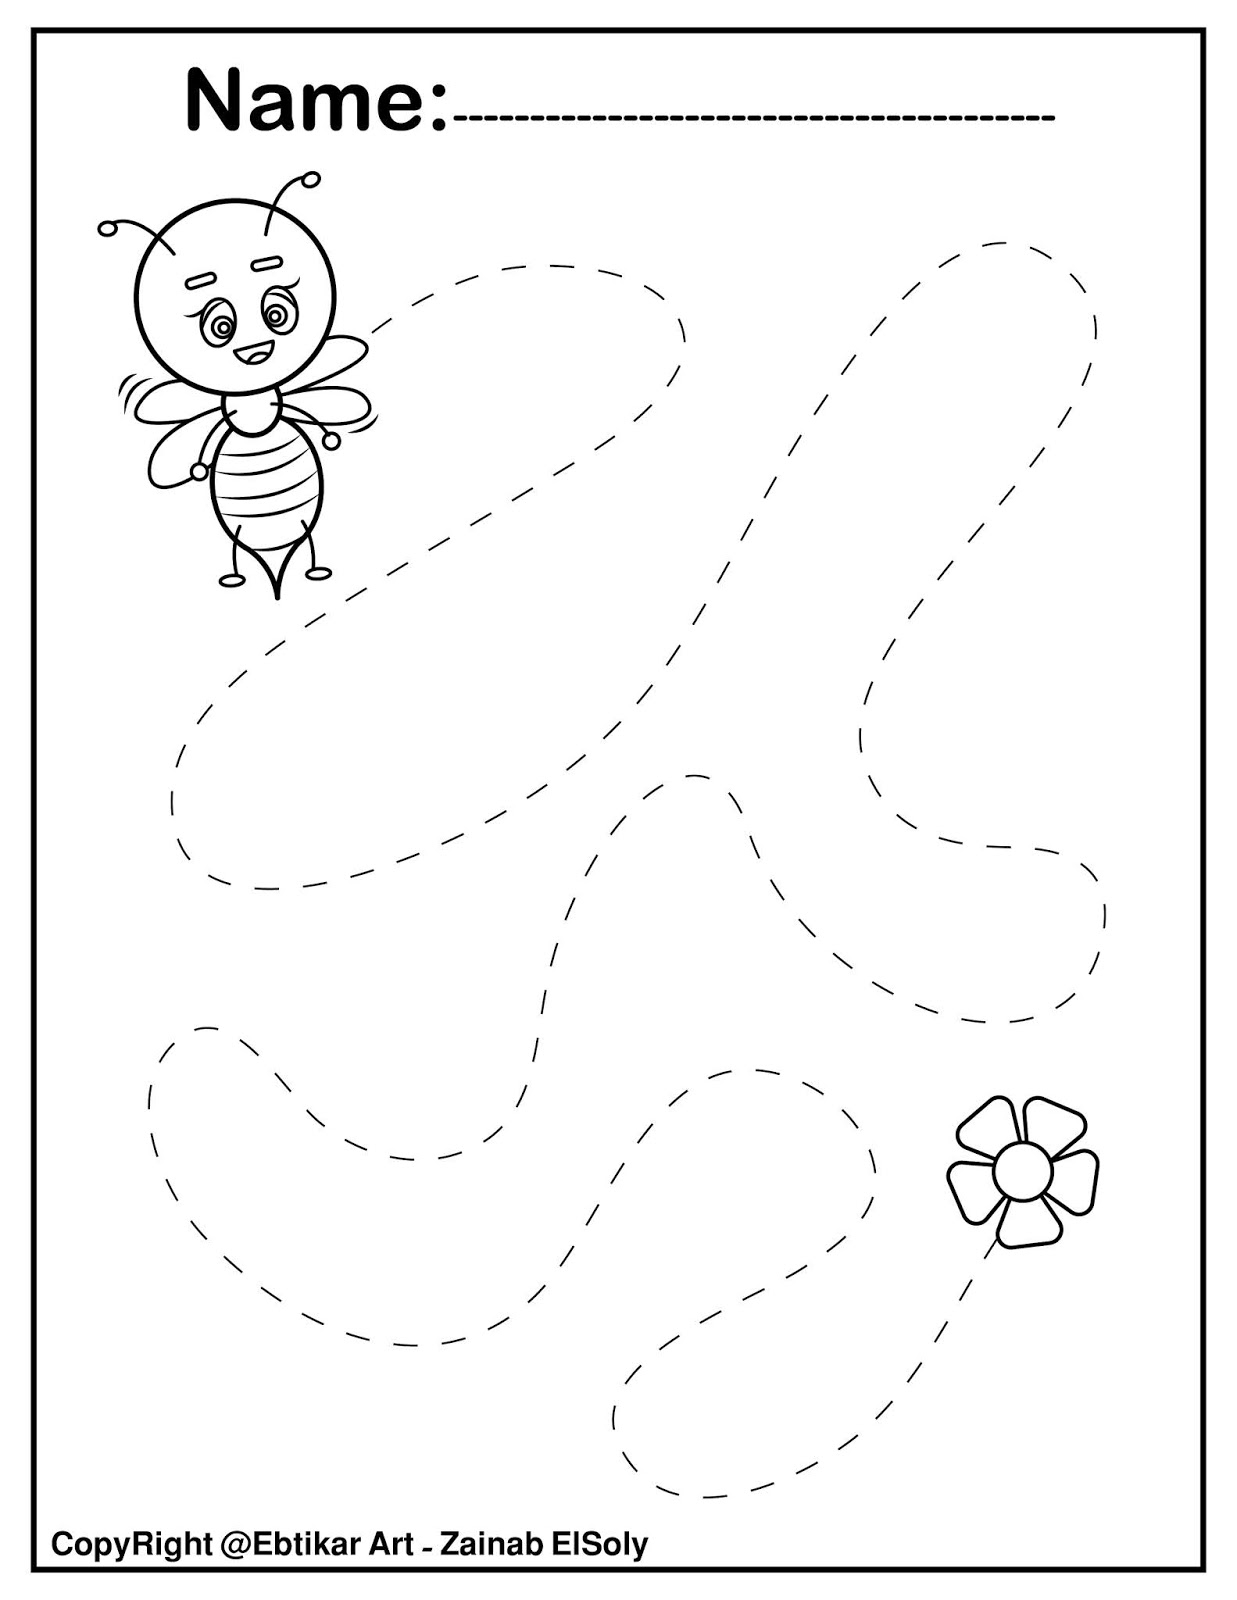 Set Of Fine Motor Tracing Activity Name Practice Activites pertaining to Name Tracing Book